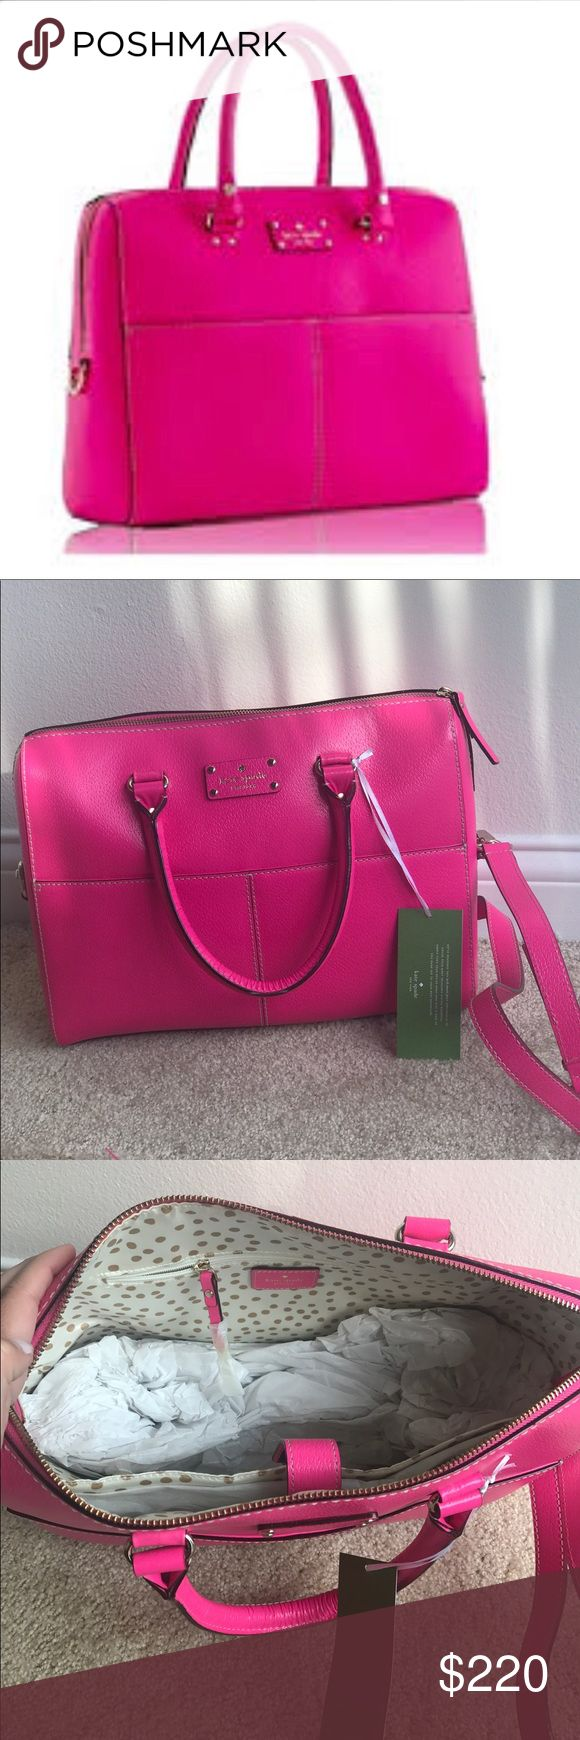 Kate Spade Laptop Briefcase New! Never used Kate Spade laptop briefcase or work bag. Perfect for traveling. Has two size straps. Tags still on and has been stored in separate bag to preserve color and material. kate spade Bags Laptop Bags